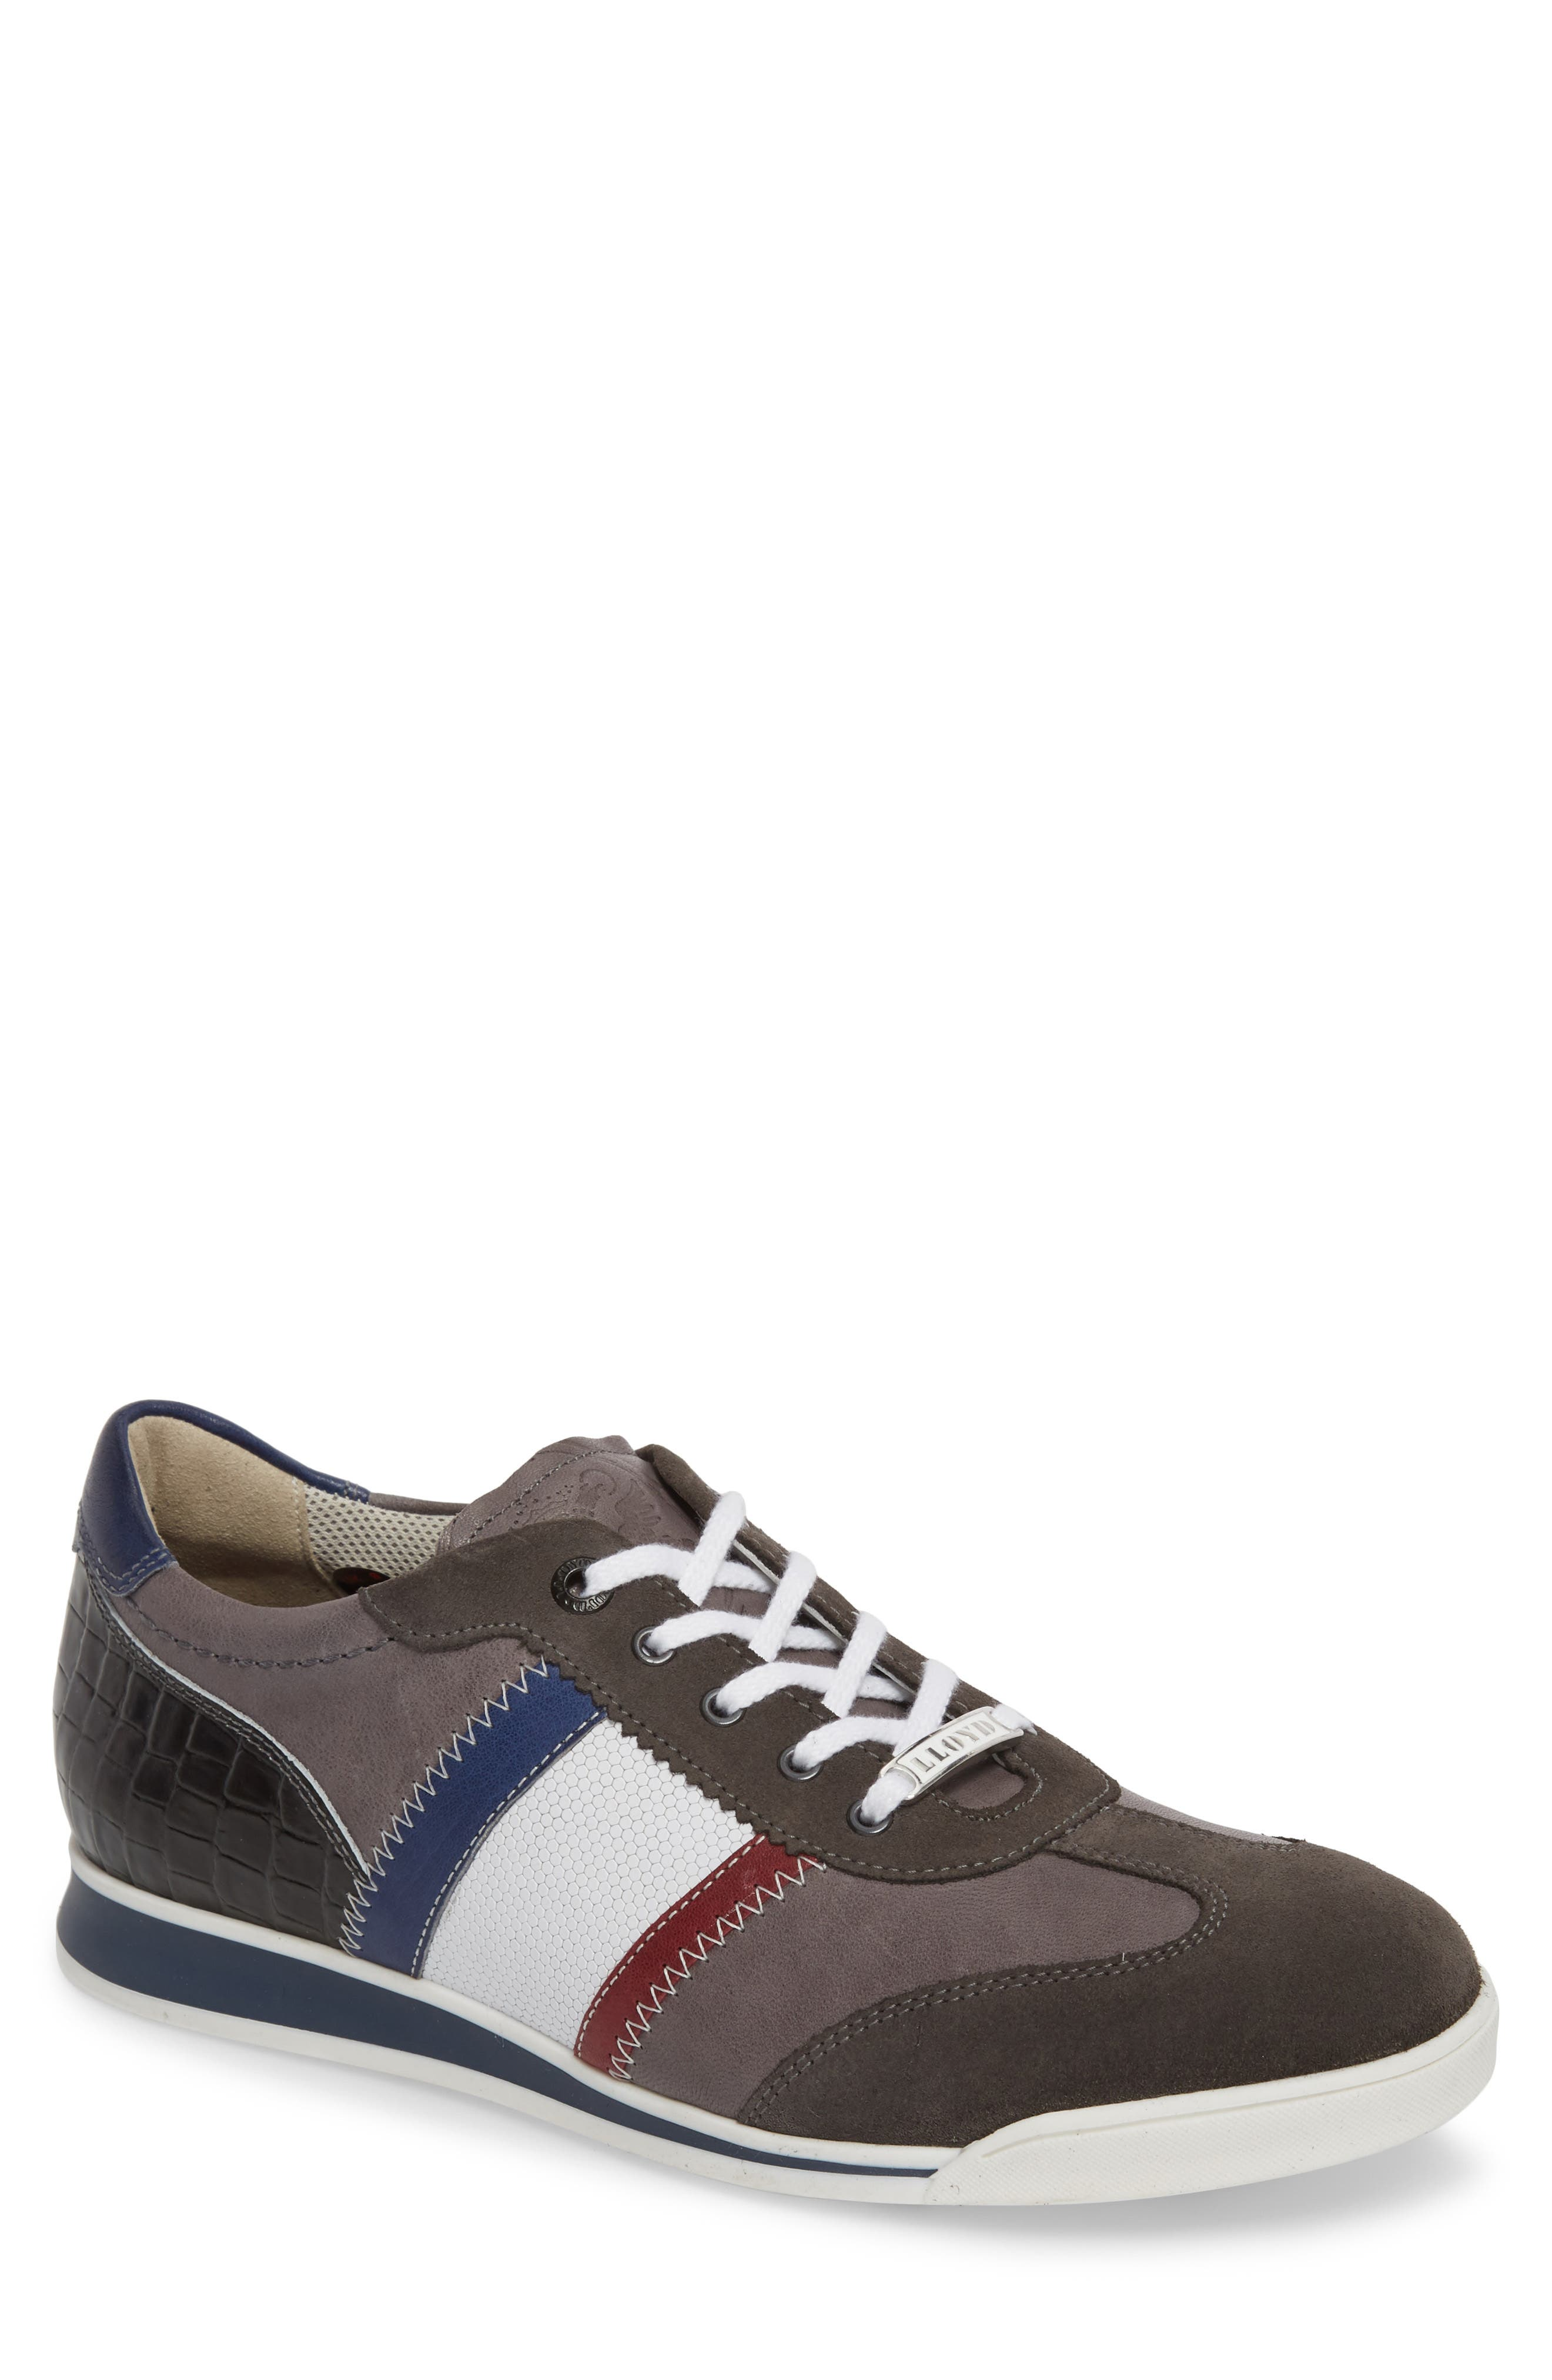 Aaron Low Top Sneaker,                             Main thumbnail 1, color,                             Grey Leather/ Suede